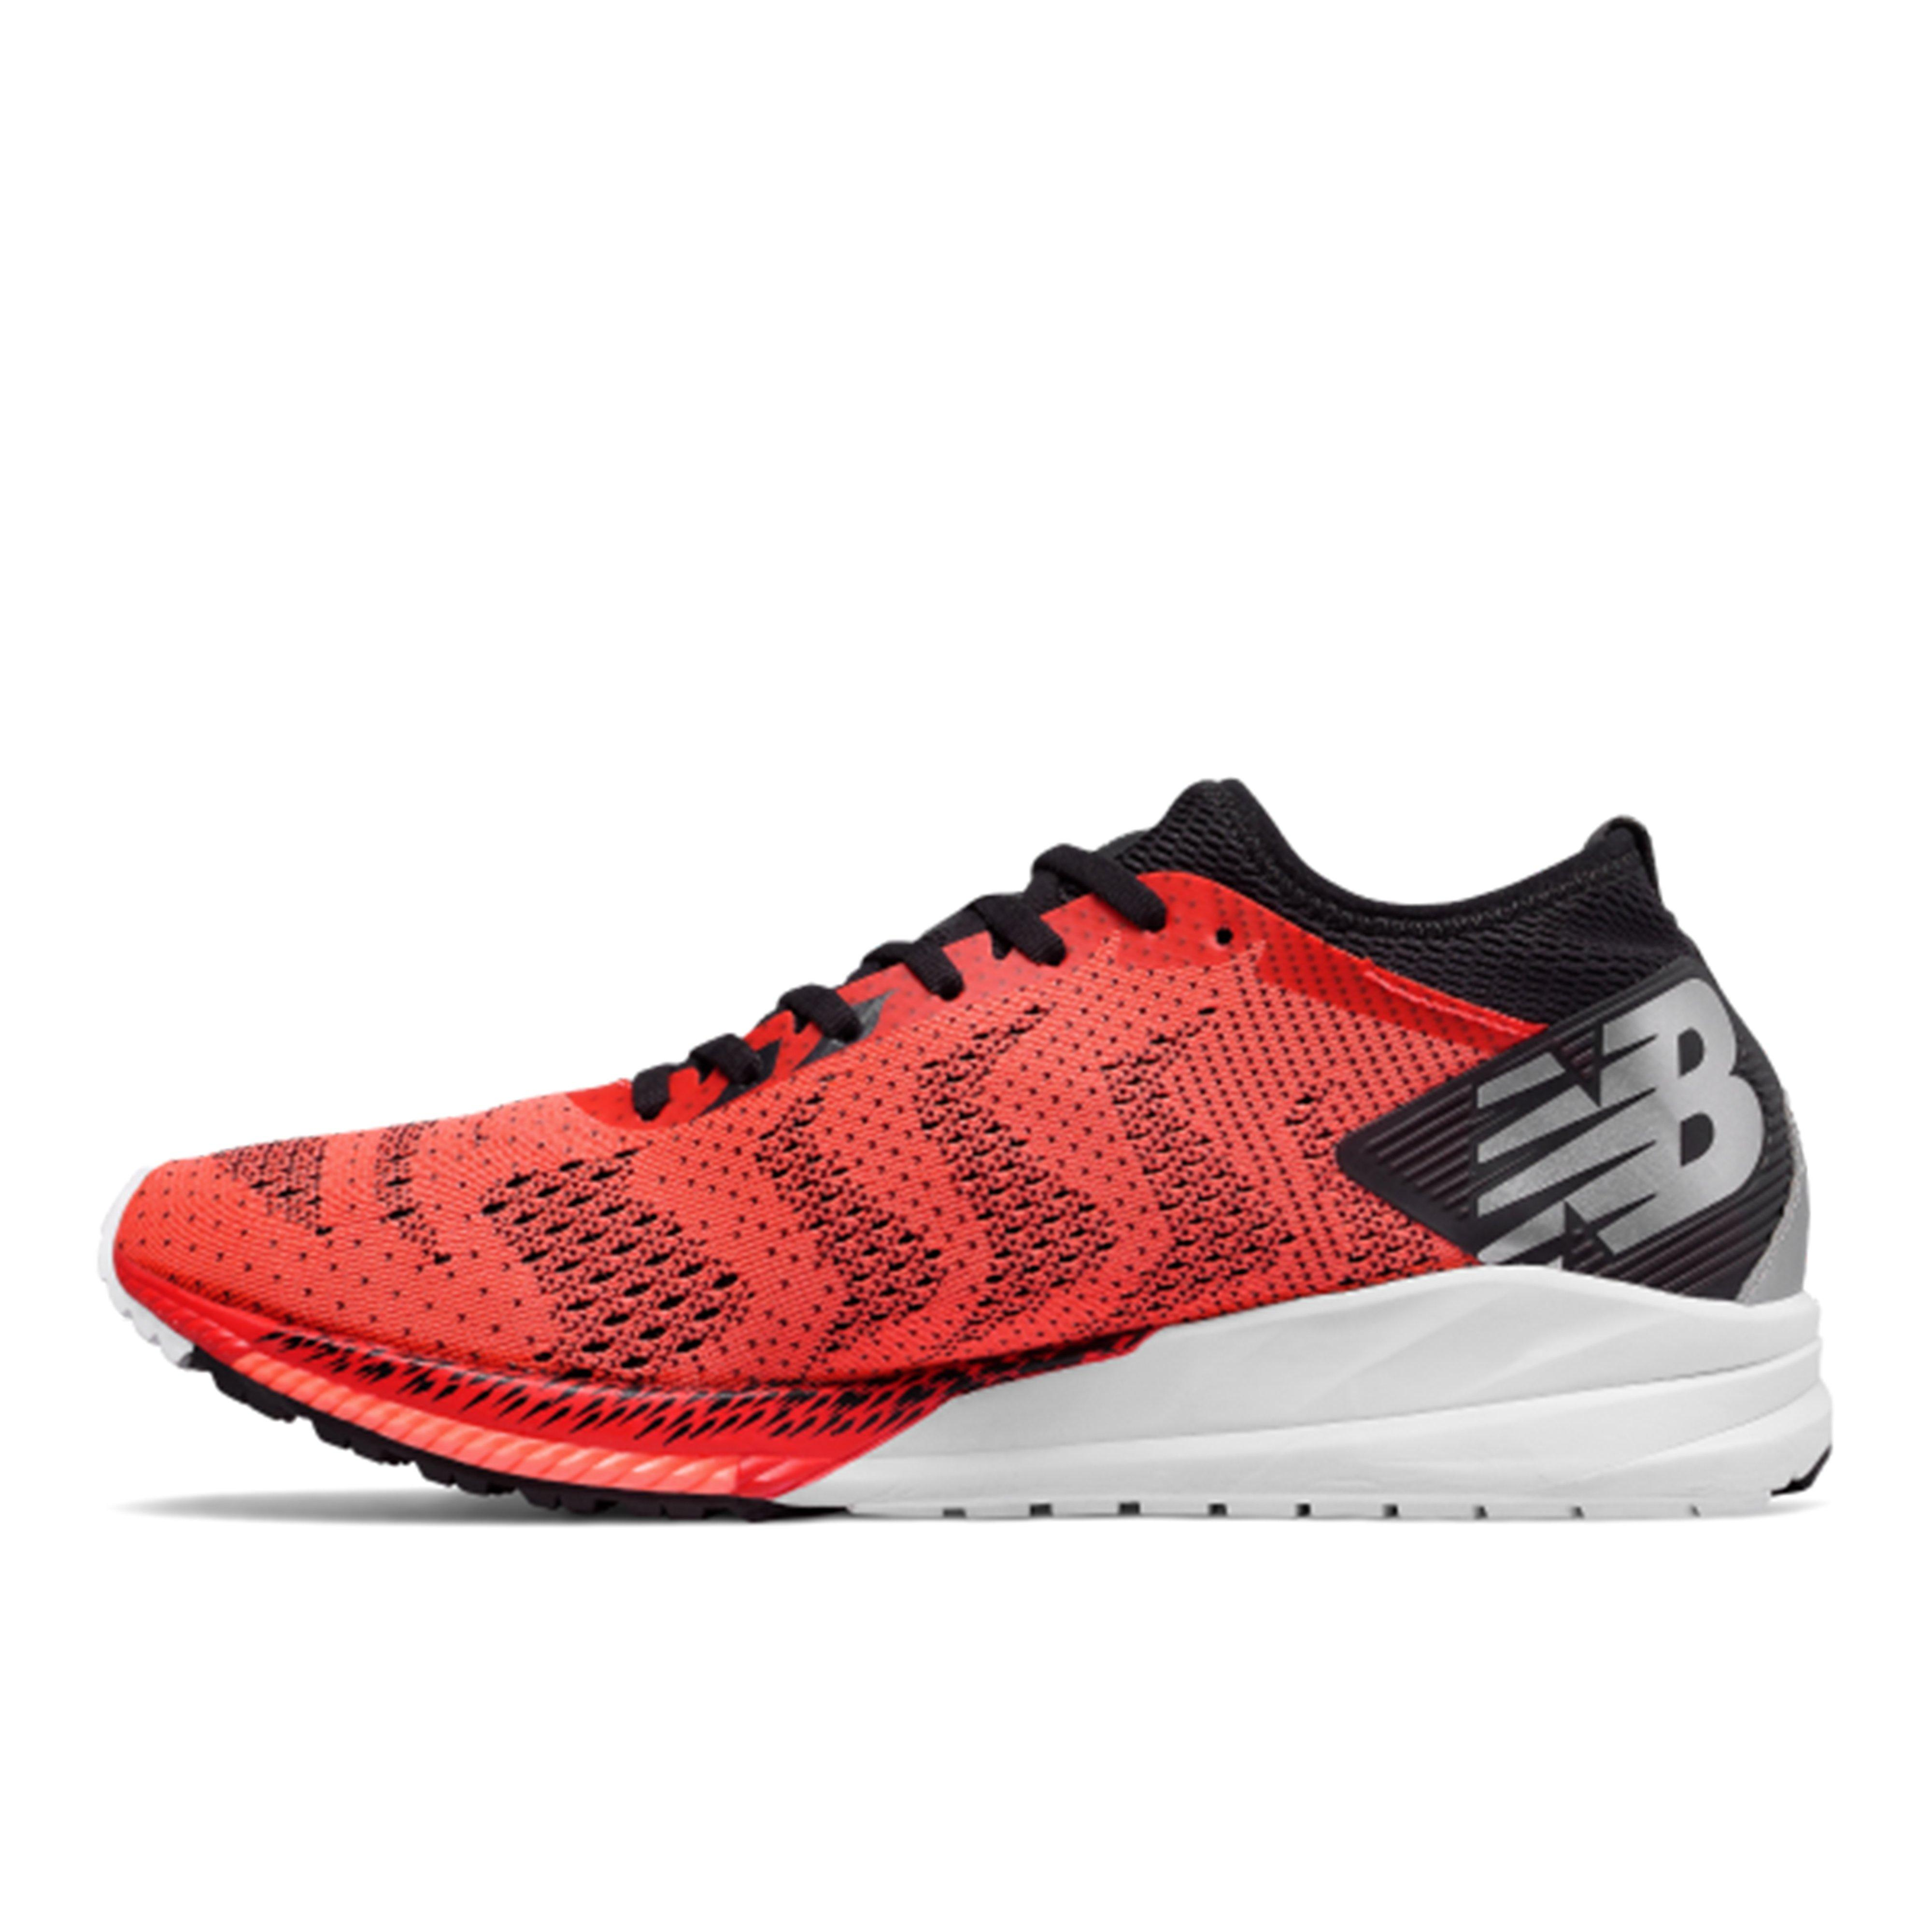 Details about New Balance FuelCell Impulse Men s Running Shoes dd312319243d